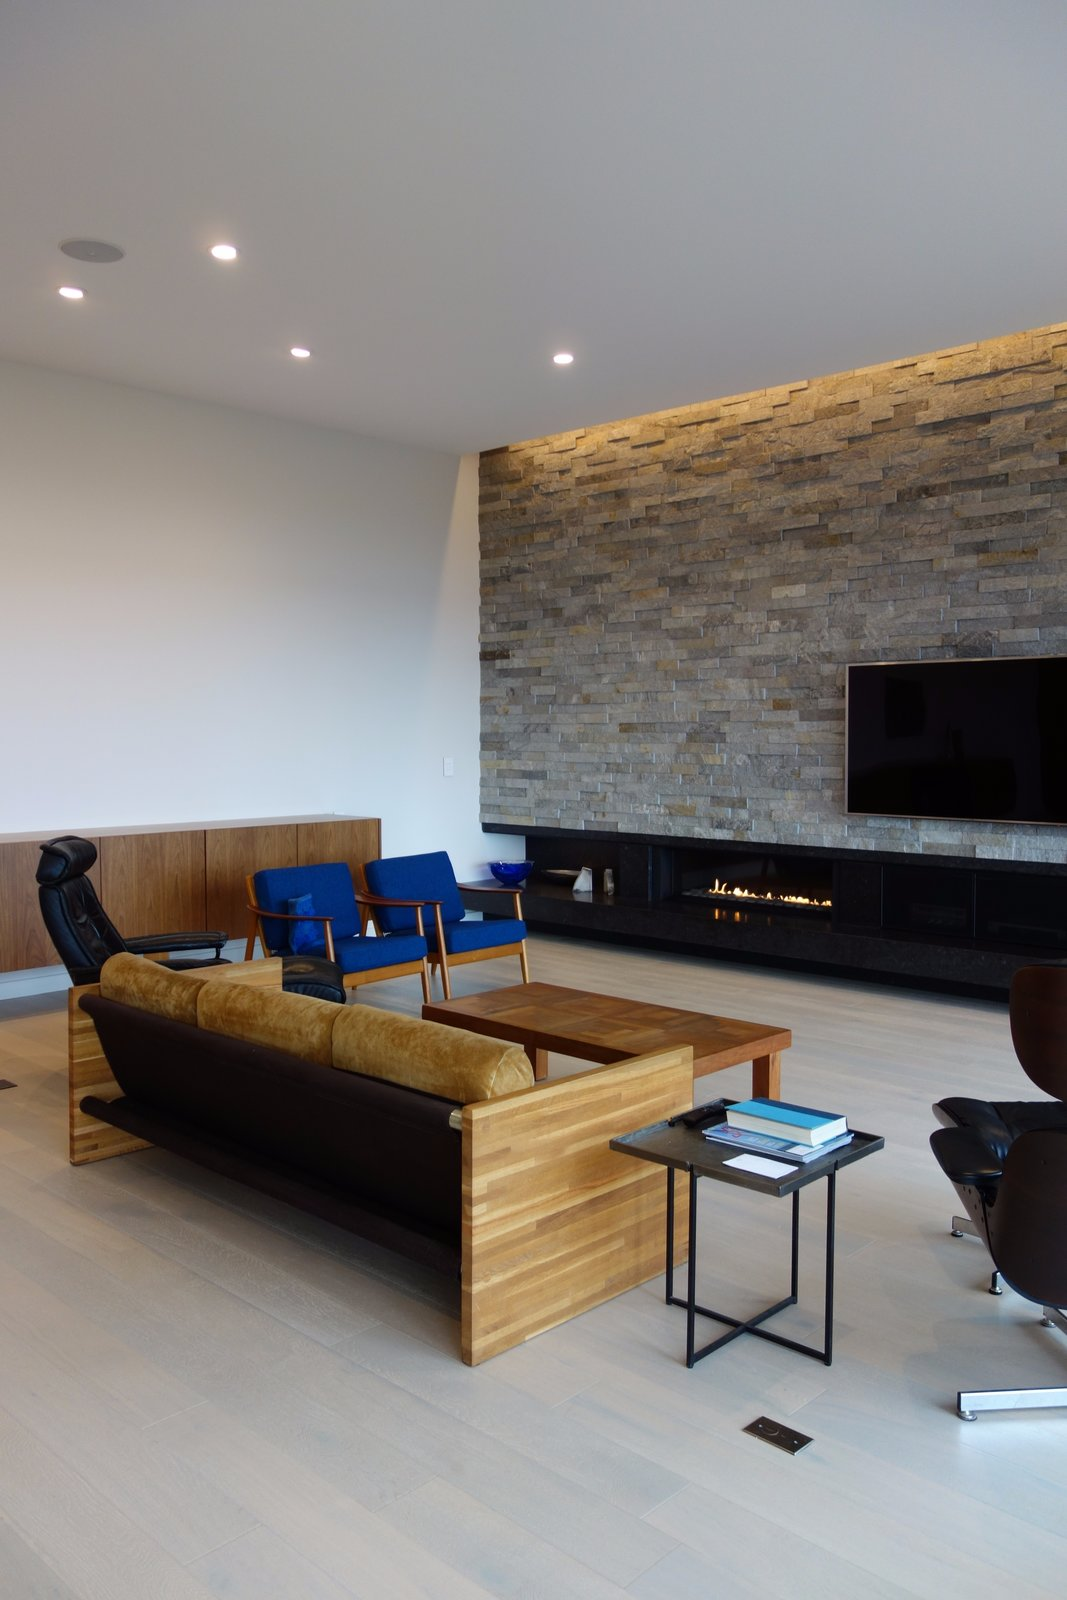 Tagged: Living Room, Bench, Chair, Sofa, Recliner, End Tables, Ottomans, Coffee Tables, Ceiling Lighting, Console Tables, Wall Lighting, Recessed Lighting, Accent Lighting, Floor Lighting, Light Hardwood Floor, and Ribbon Fireplace.  Long House HS by Matthew Dudzik